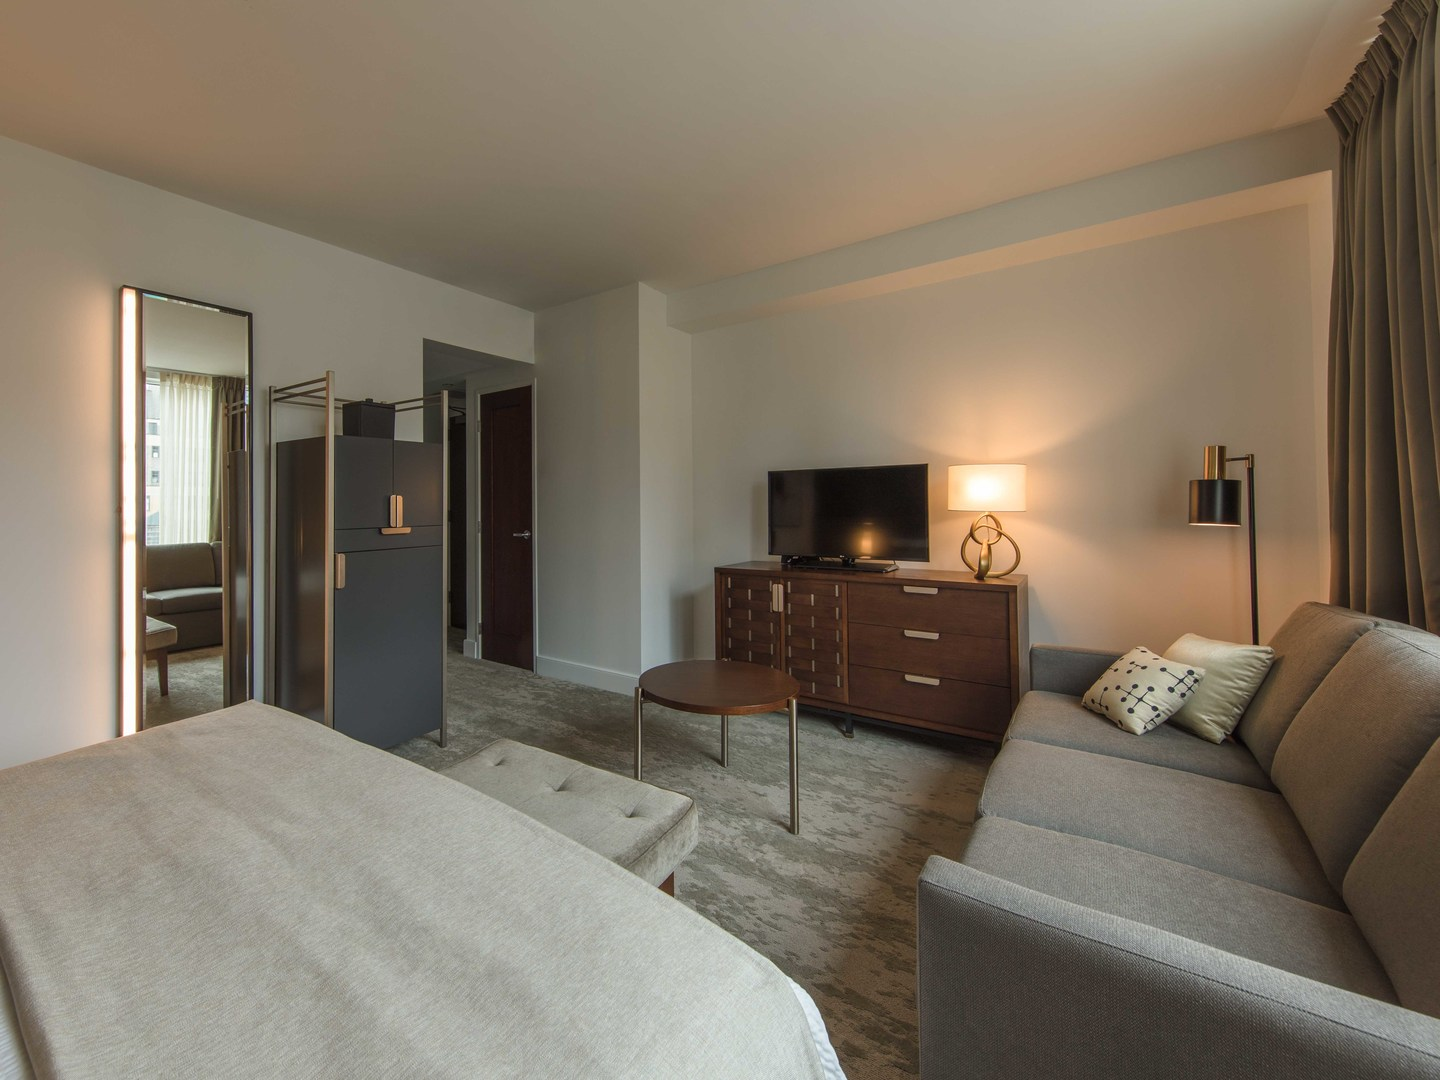 Marriott Vacation Club Pulse<span class='trademark'>®</span>, New York City Deluxe King Guestroom. Marriott Vacation Club Pulse<span class='trademark'>®</span>, New York City is located in New York City, New York United States.